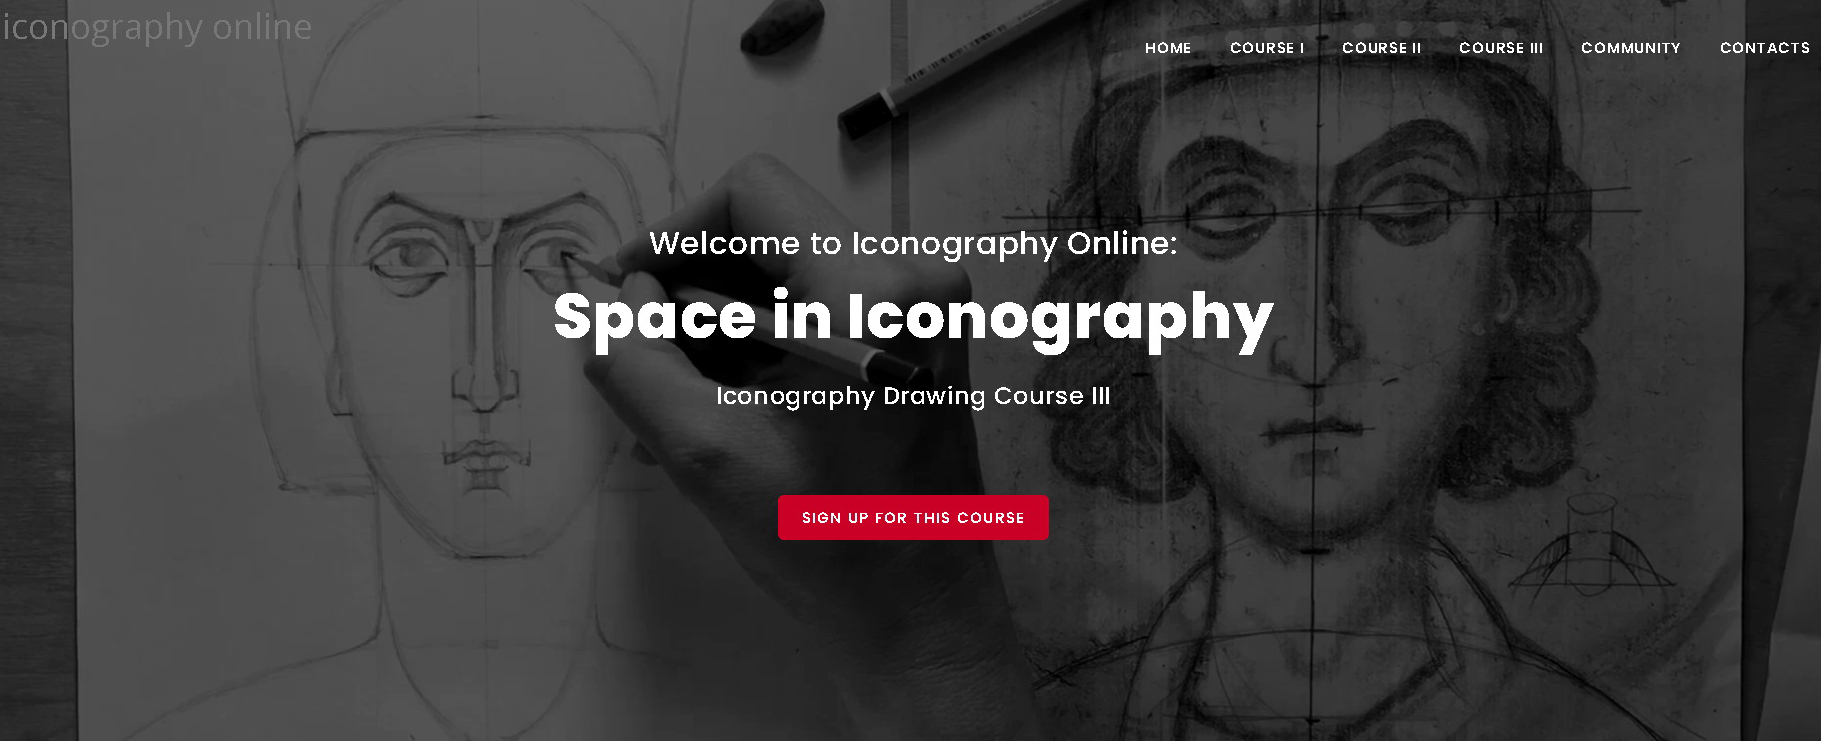 Online Iconography Drawing Course Space in Iconography